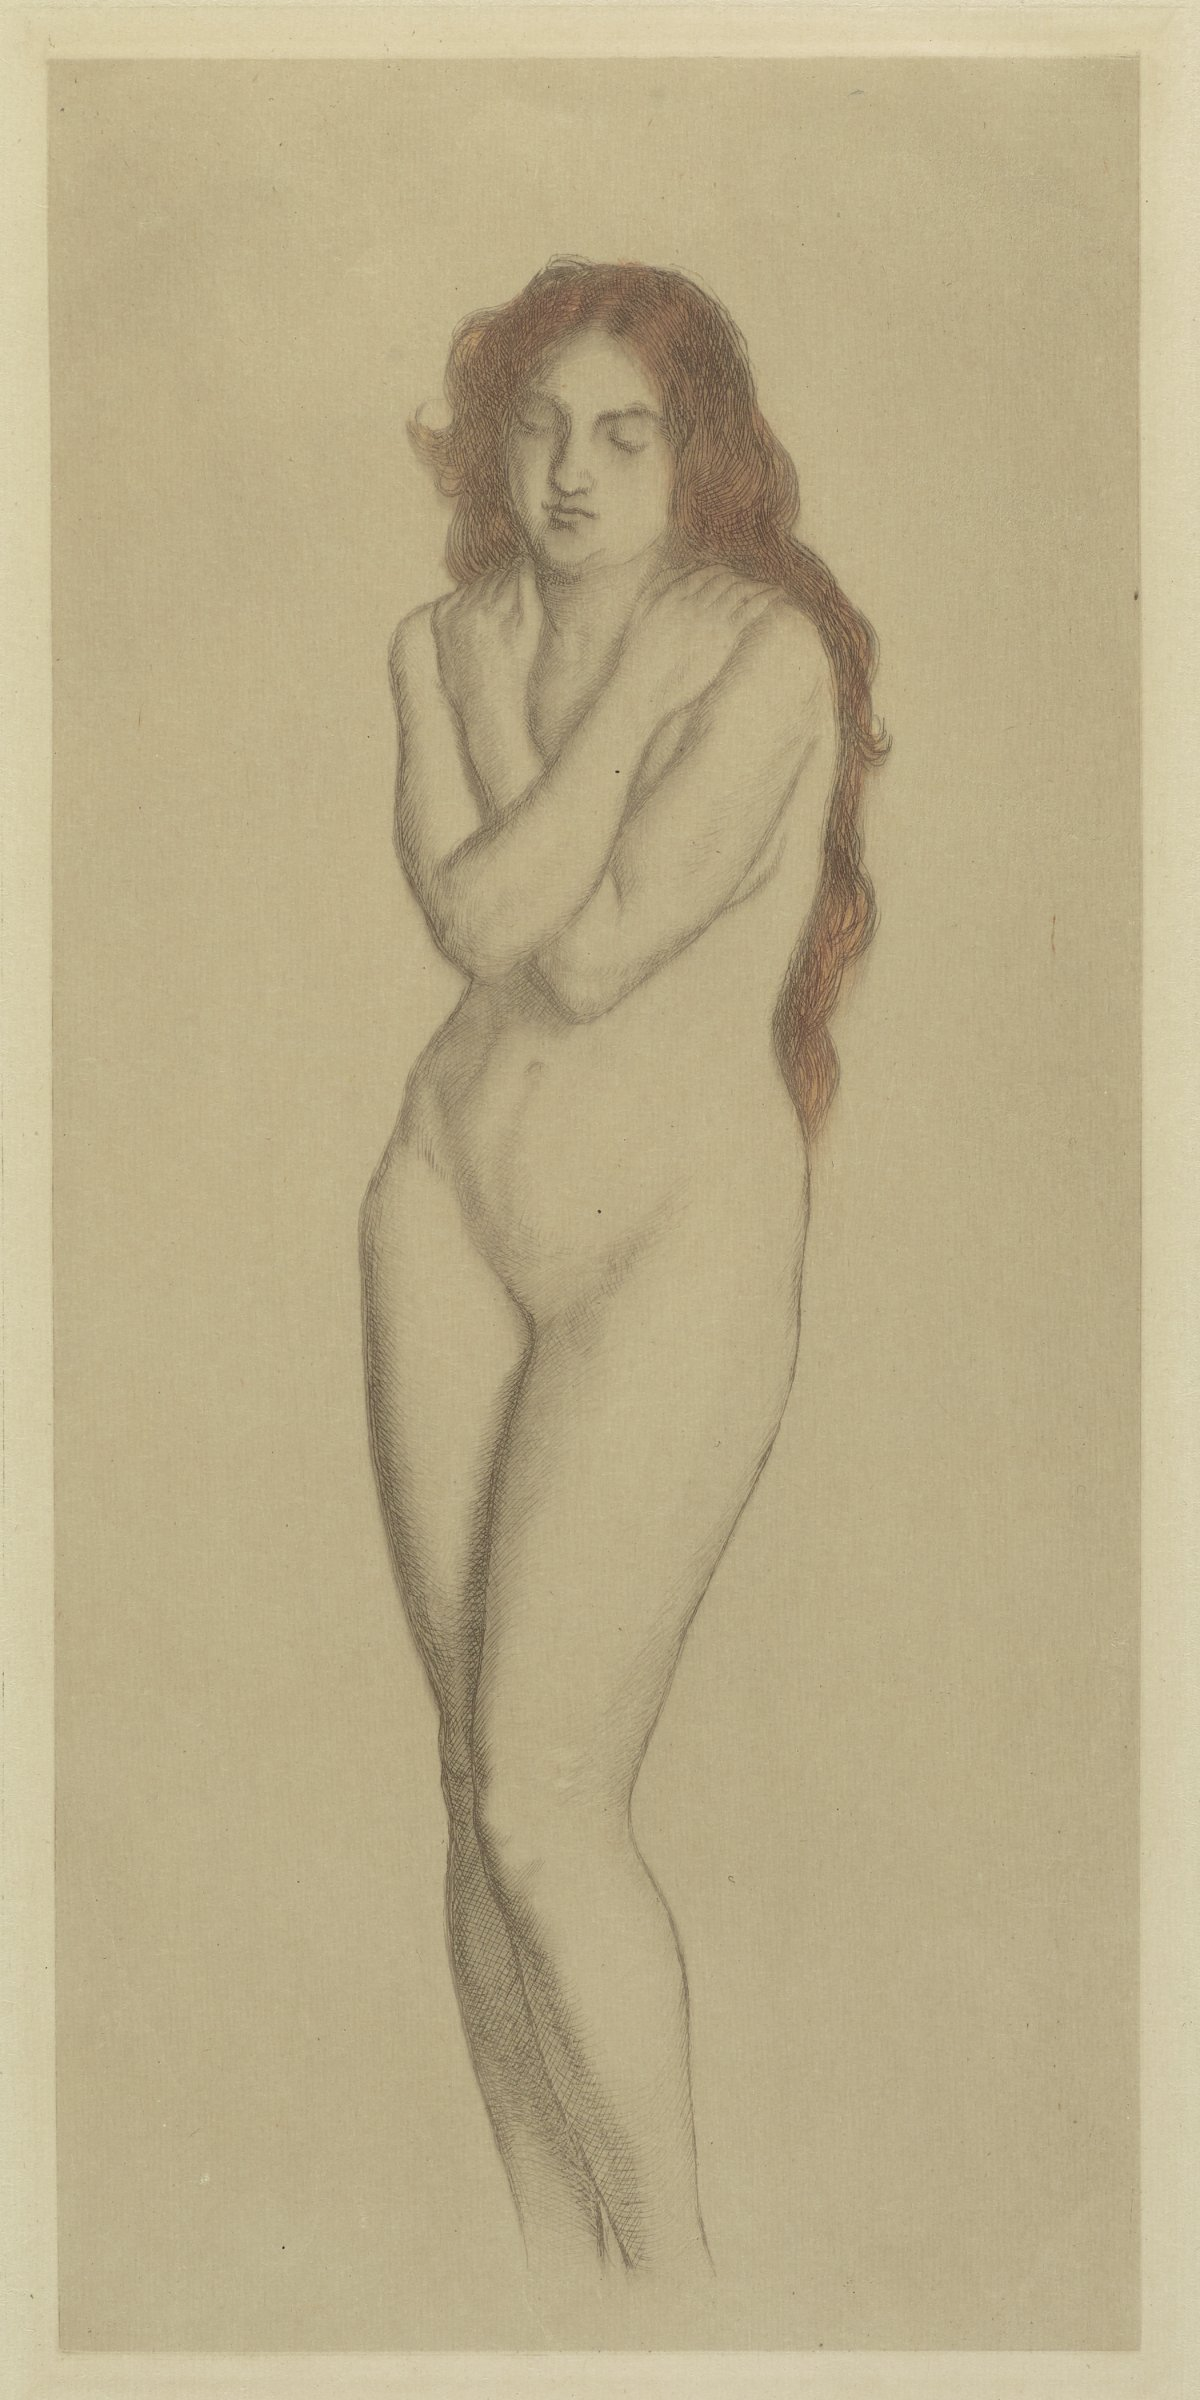 Figure drawing of a standing nude woman with her arms crossed across her chest and hands resting on her shoulders. The only color in the print is her long red hair.